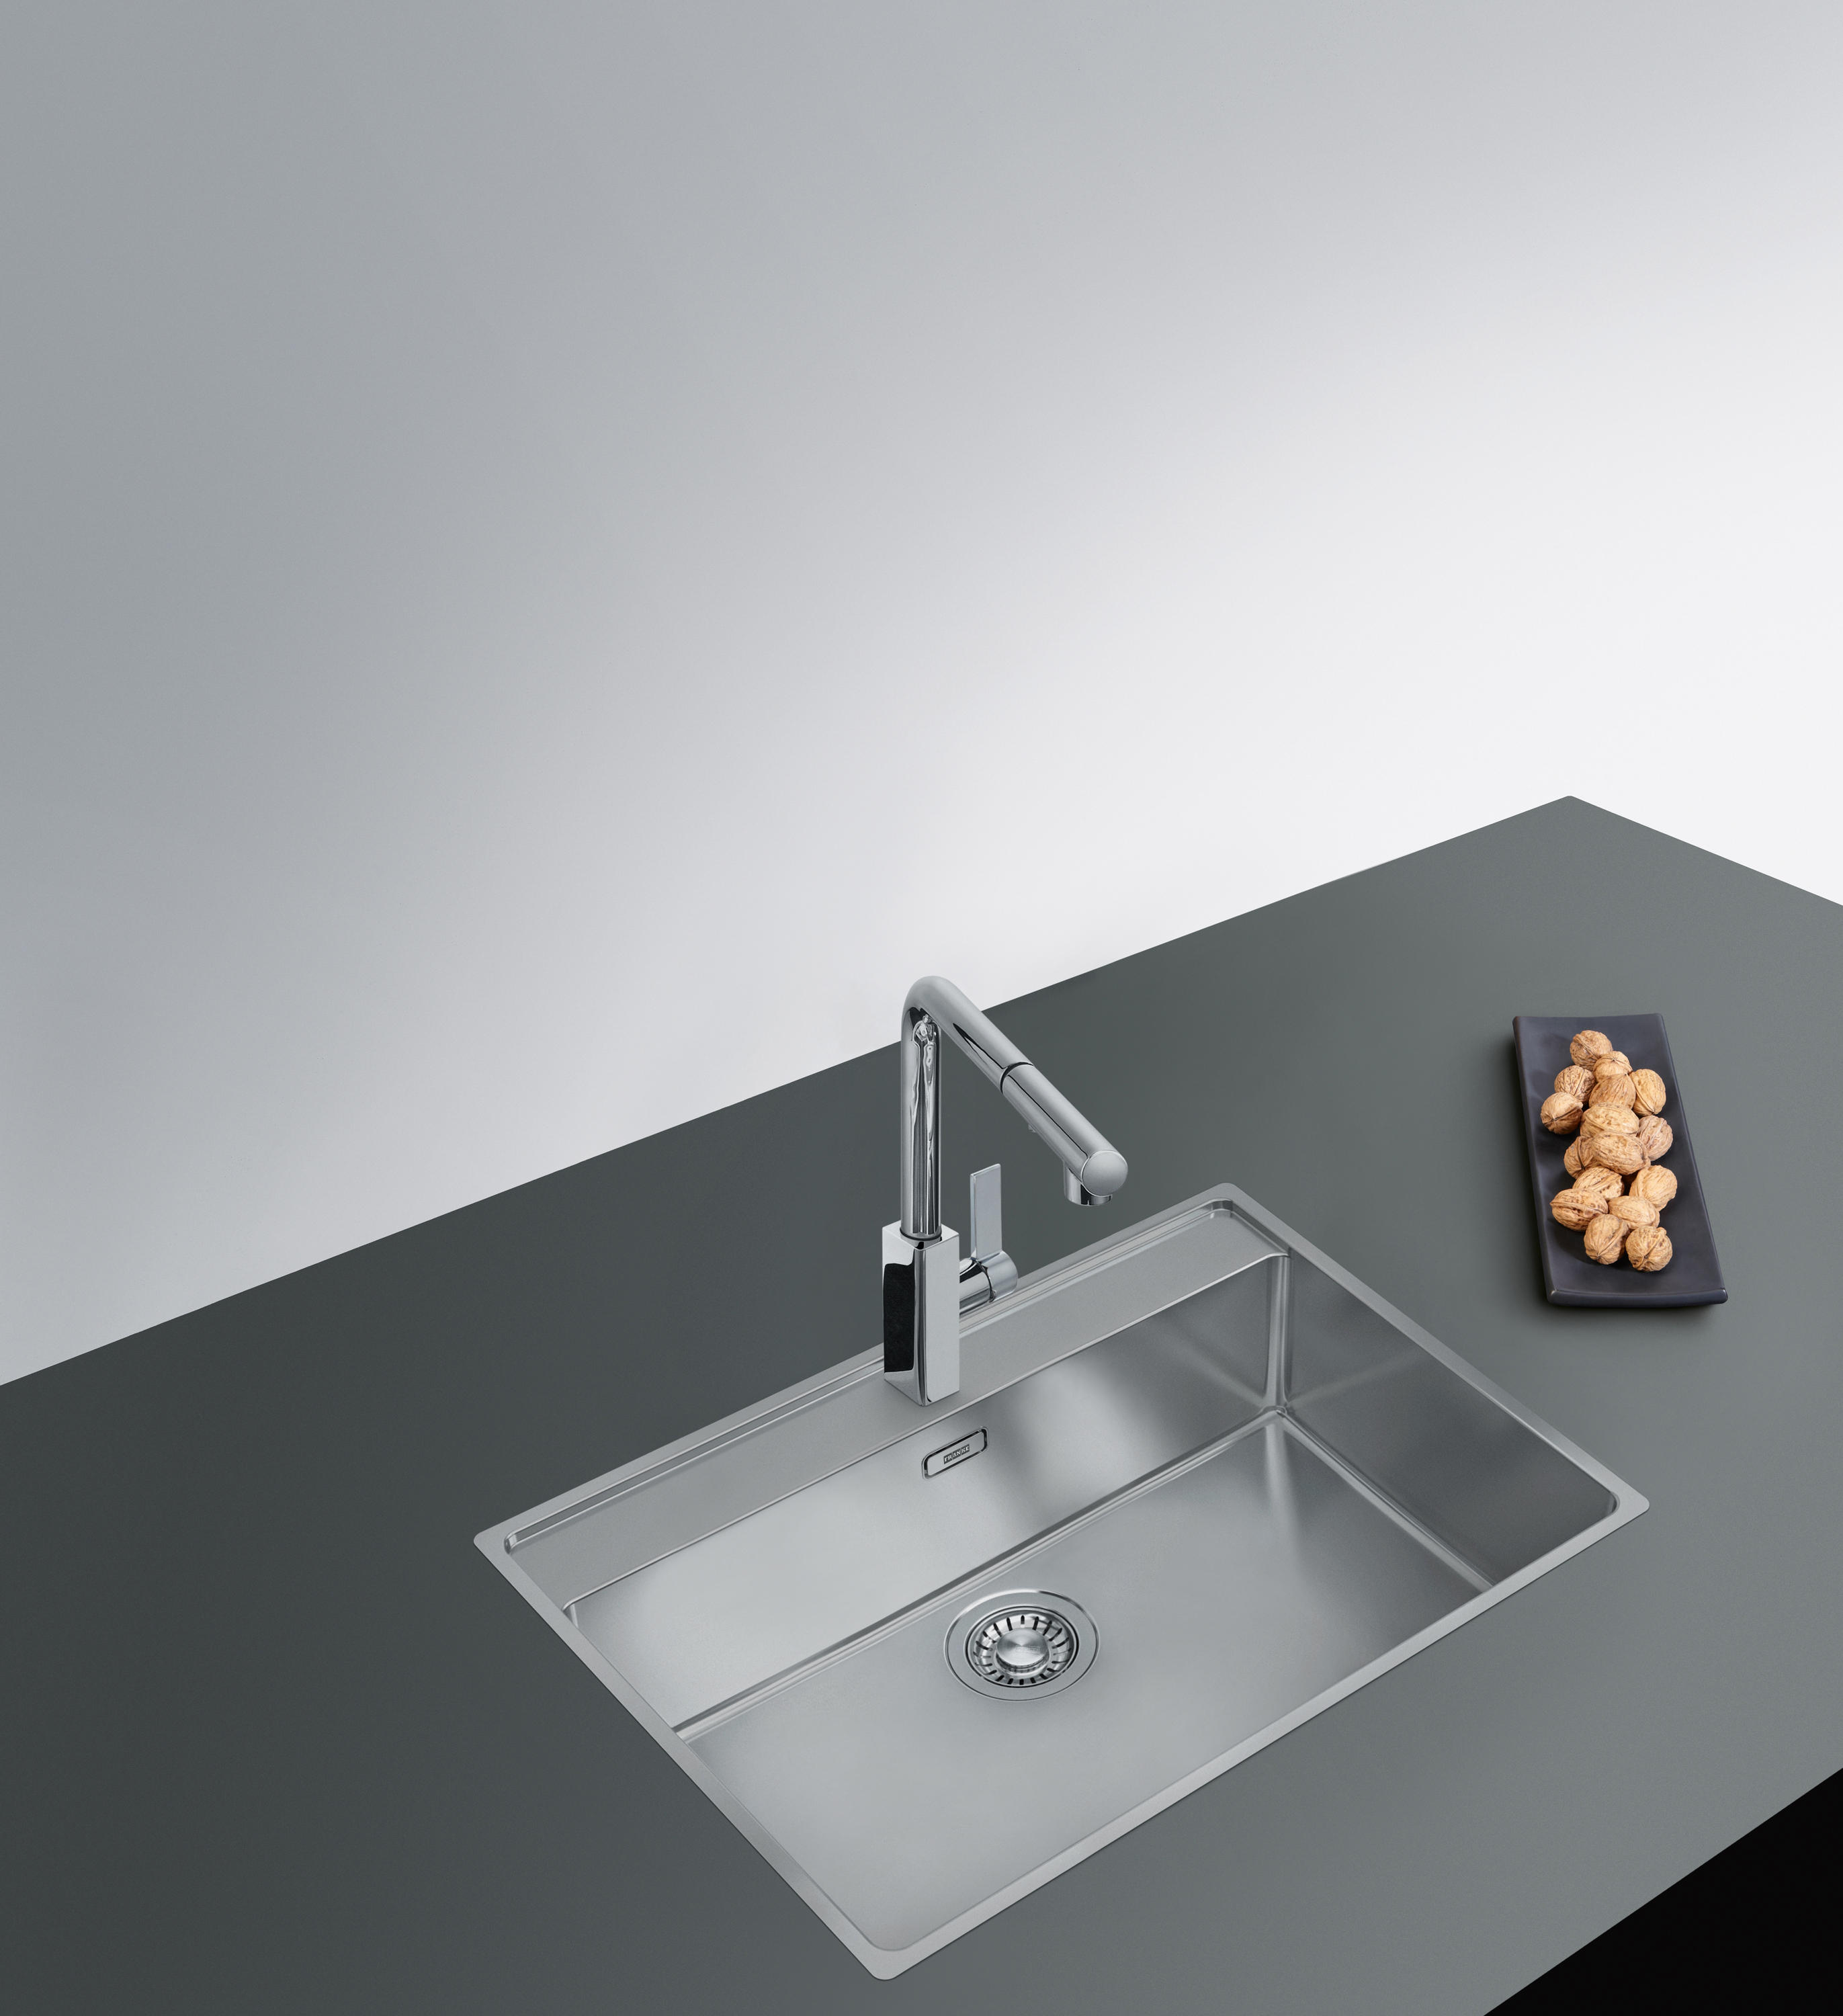 Maris sink mrx 110 34 stainless steel by franke kitchen systems